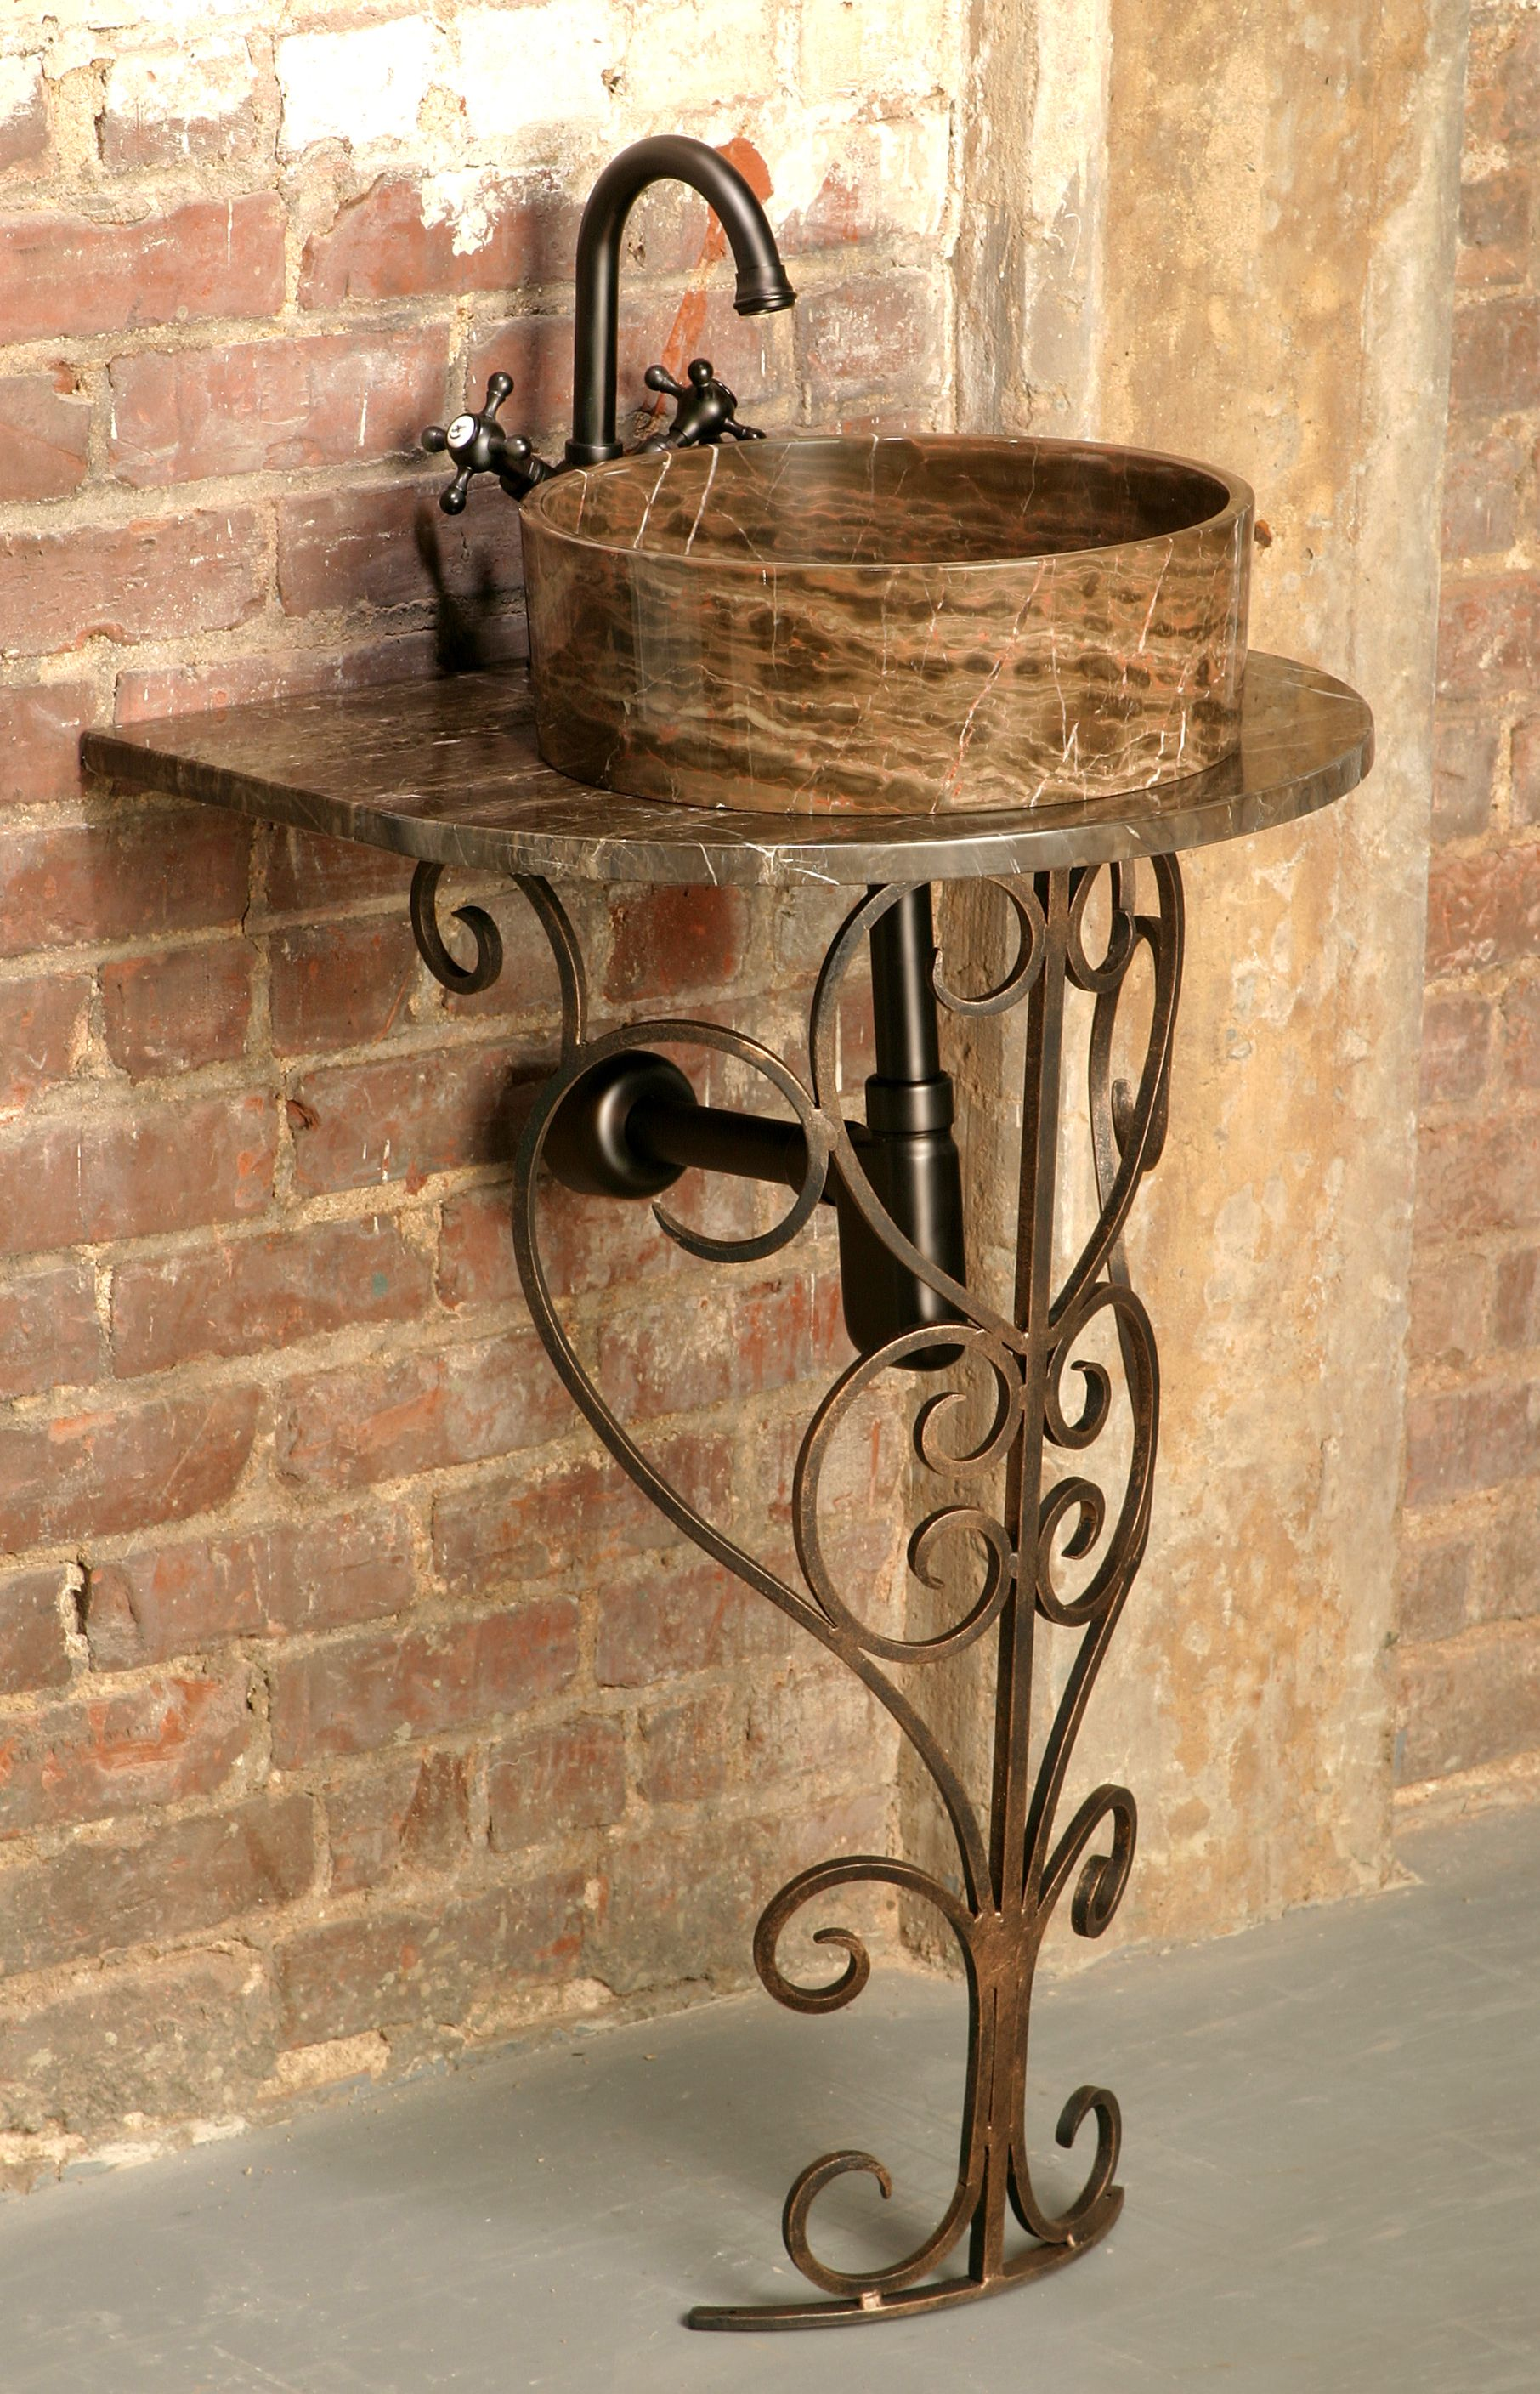 D Vontz Wrought Iron Pedestal Stand For Lavatory Sink